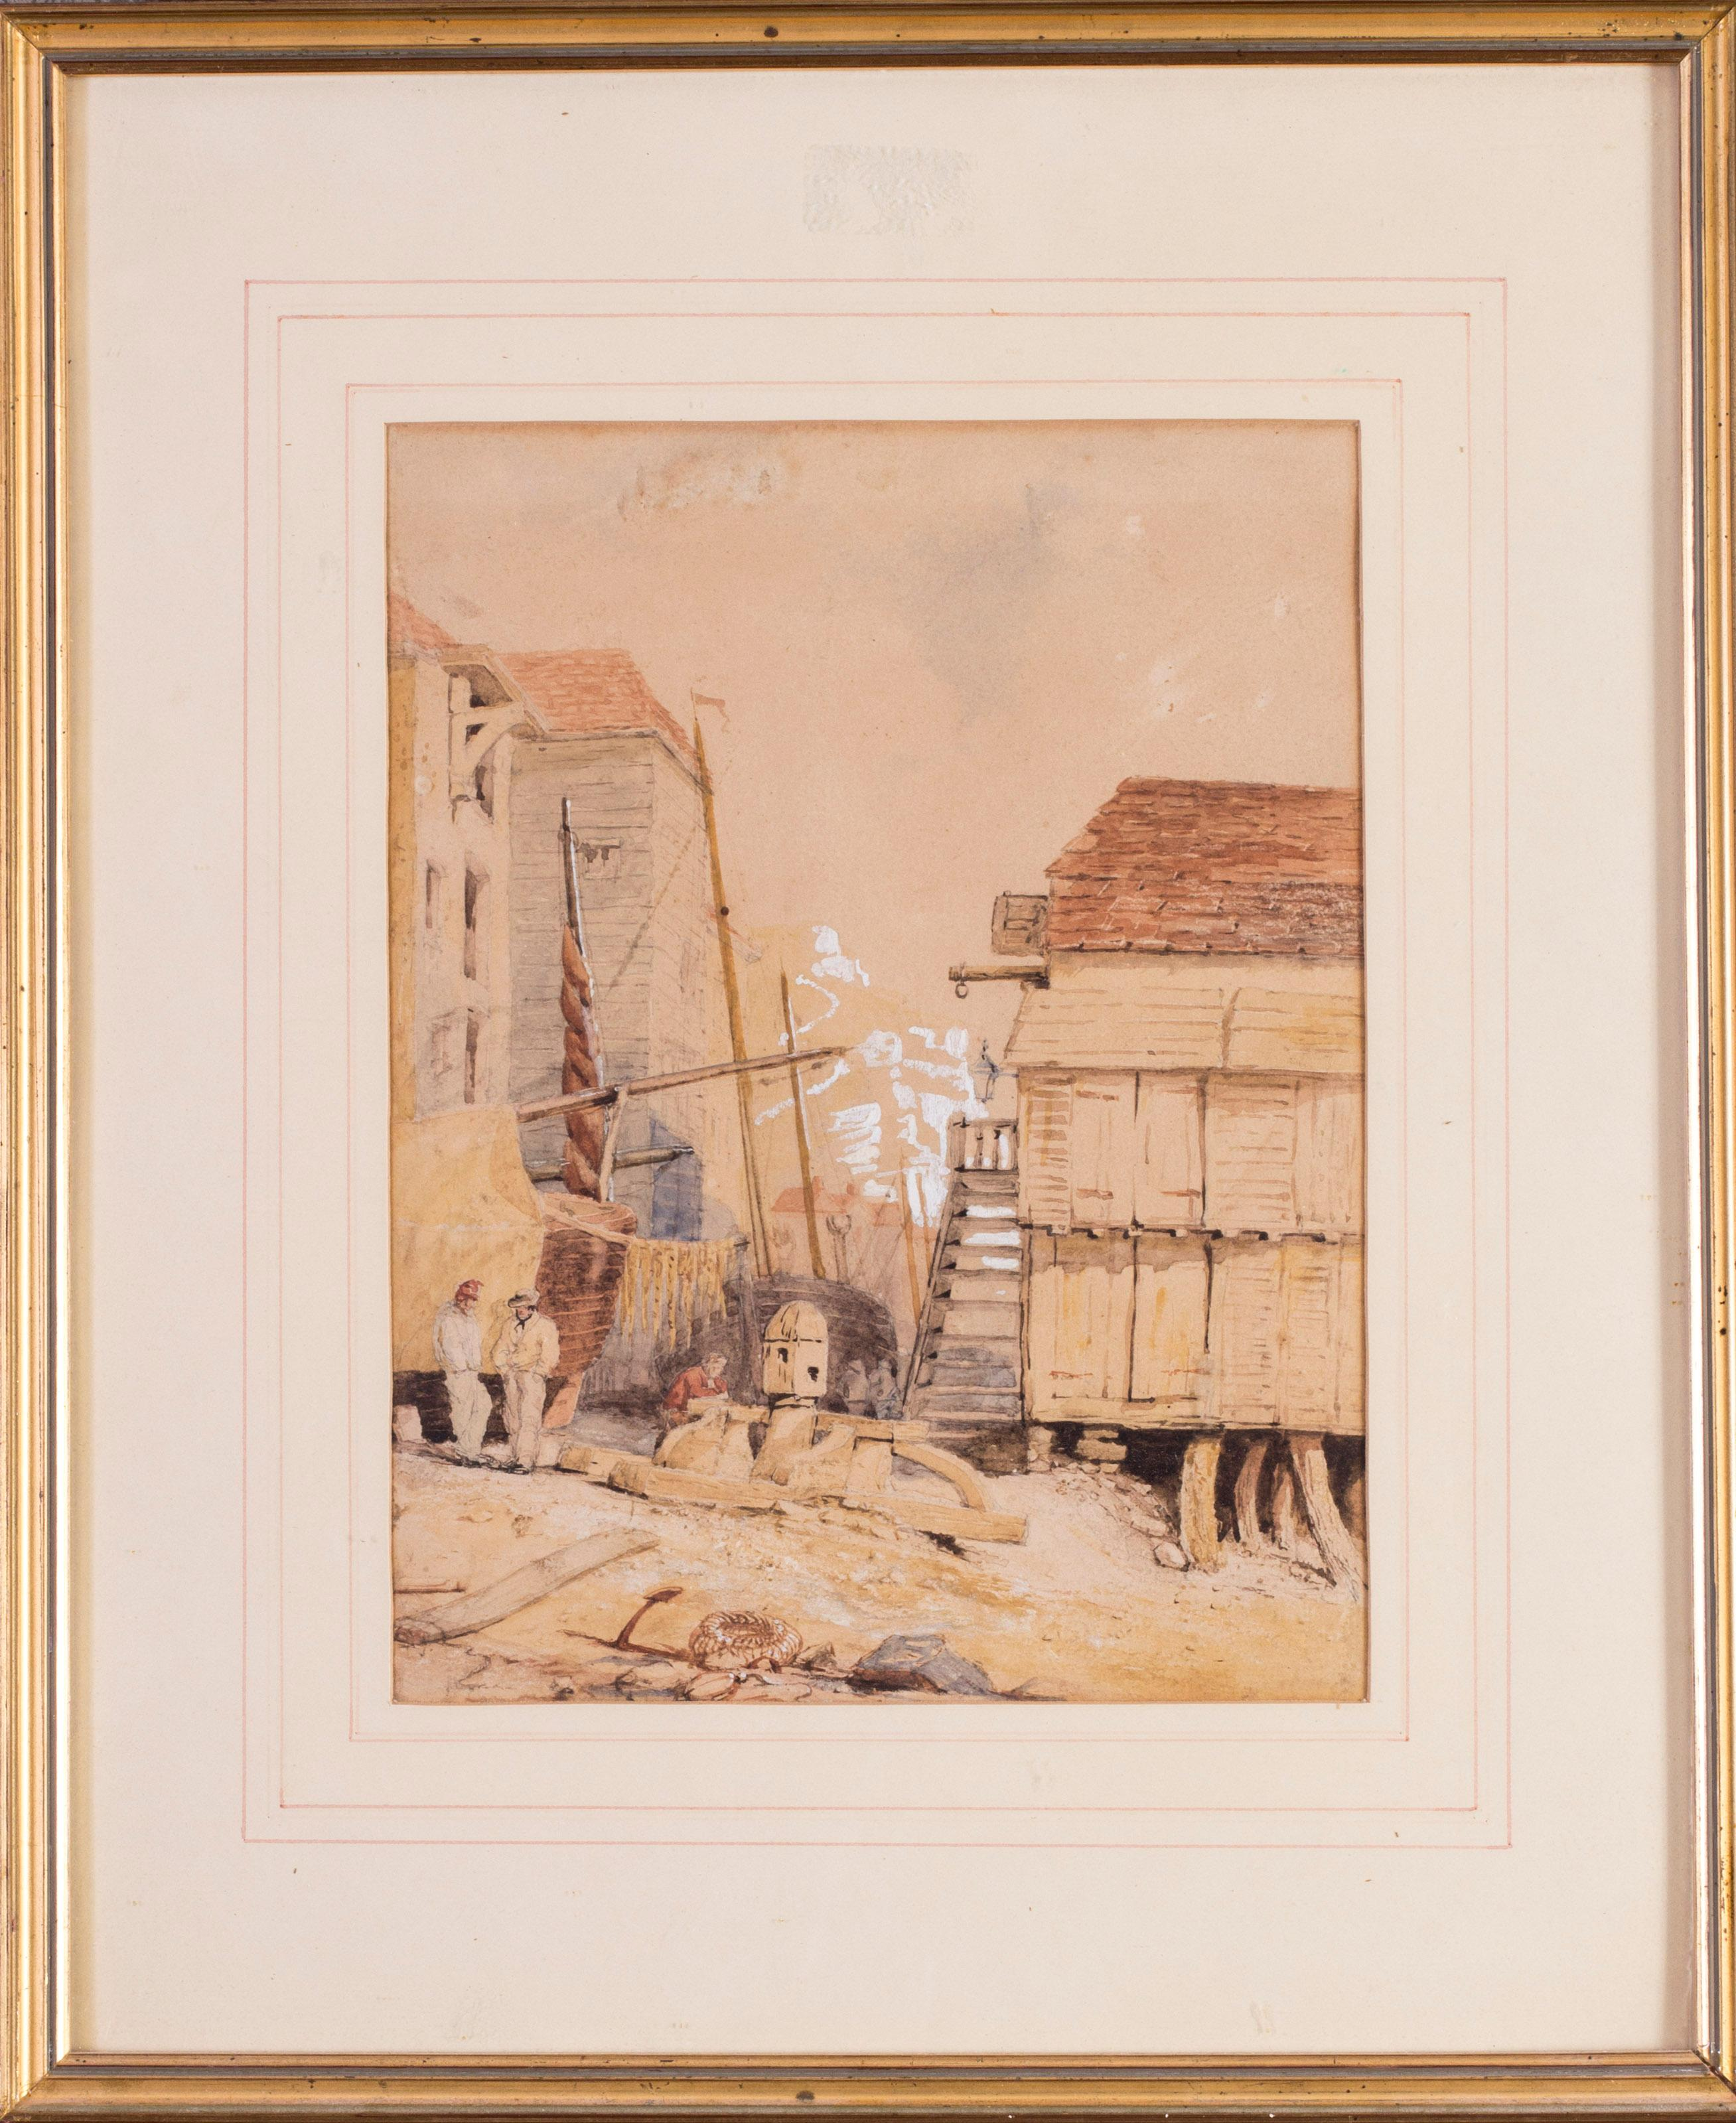 British, 19th Century watercolour of Hastings, on the coast in East Sussex